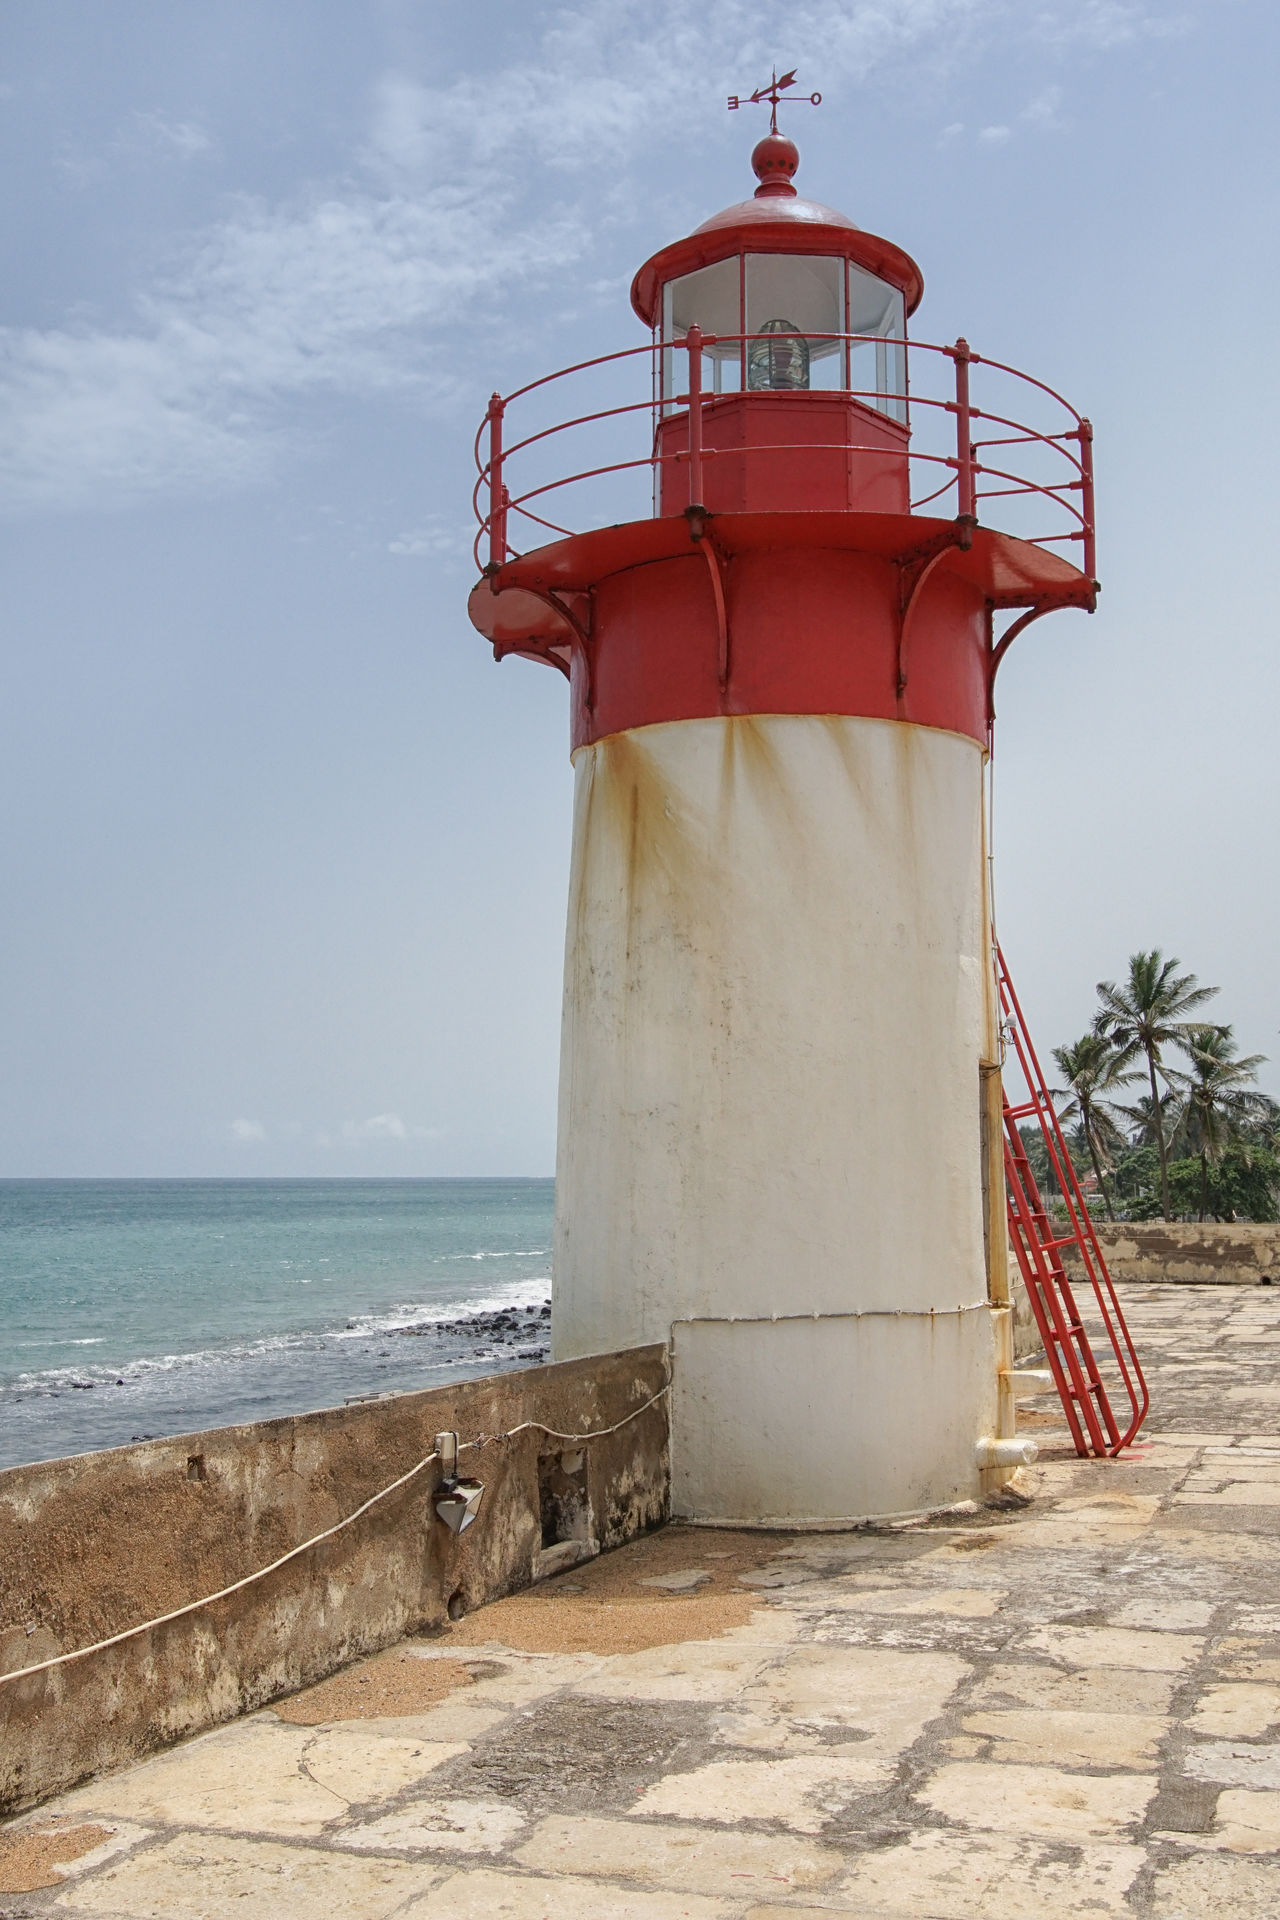 Lighthouse of Fort Sao Sebastiao, Sao Tome city, Sao Tome and Principe, Africa Africa Architecture Building Exterior Built Structure City Coast Coastline Day Famous Place Landmark Lighthouse Marítim No People Outdoors Point Of Interest Sao Tome Sao Tome And Principe Sights Sightseeing Tourism Tourist Attraction  Travel Travel Destinations Vacations West Africa